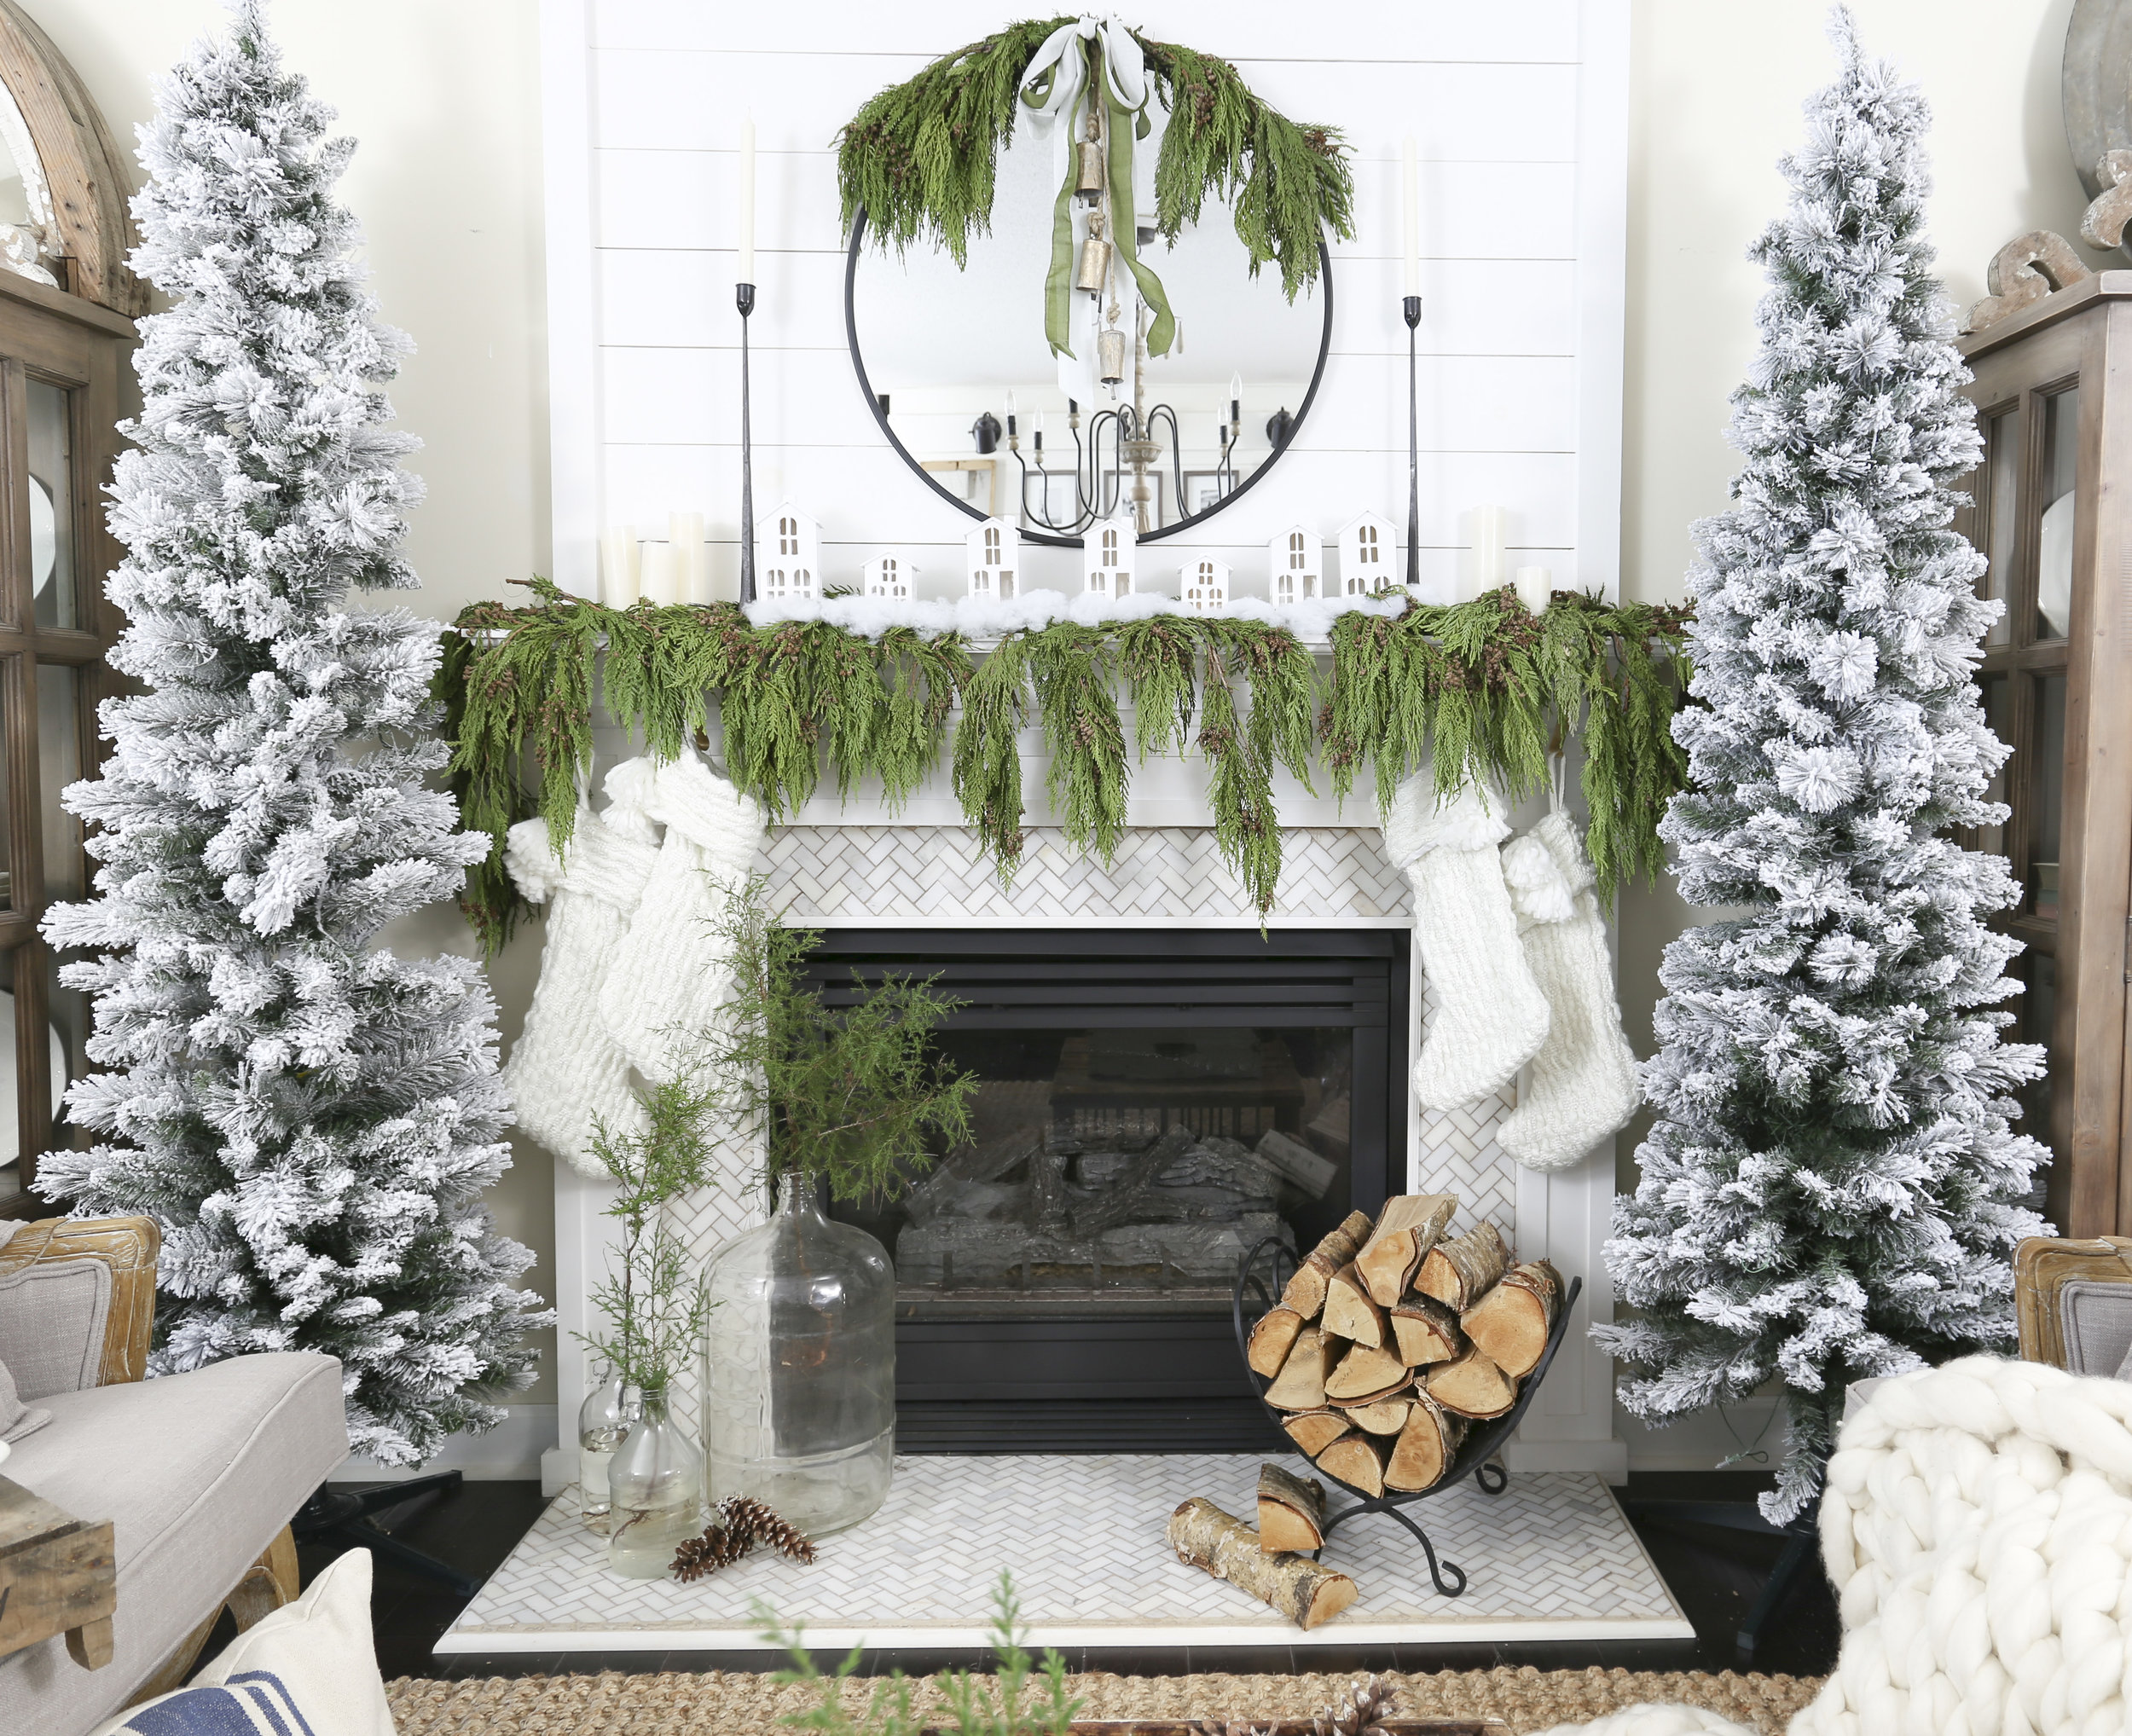 Deck The Blogs: My 2017 Christmas Home Tour